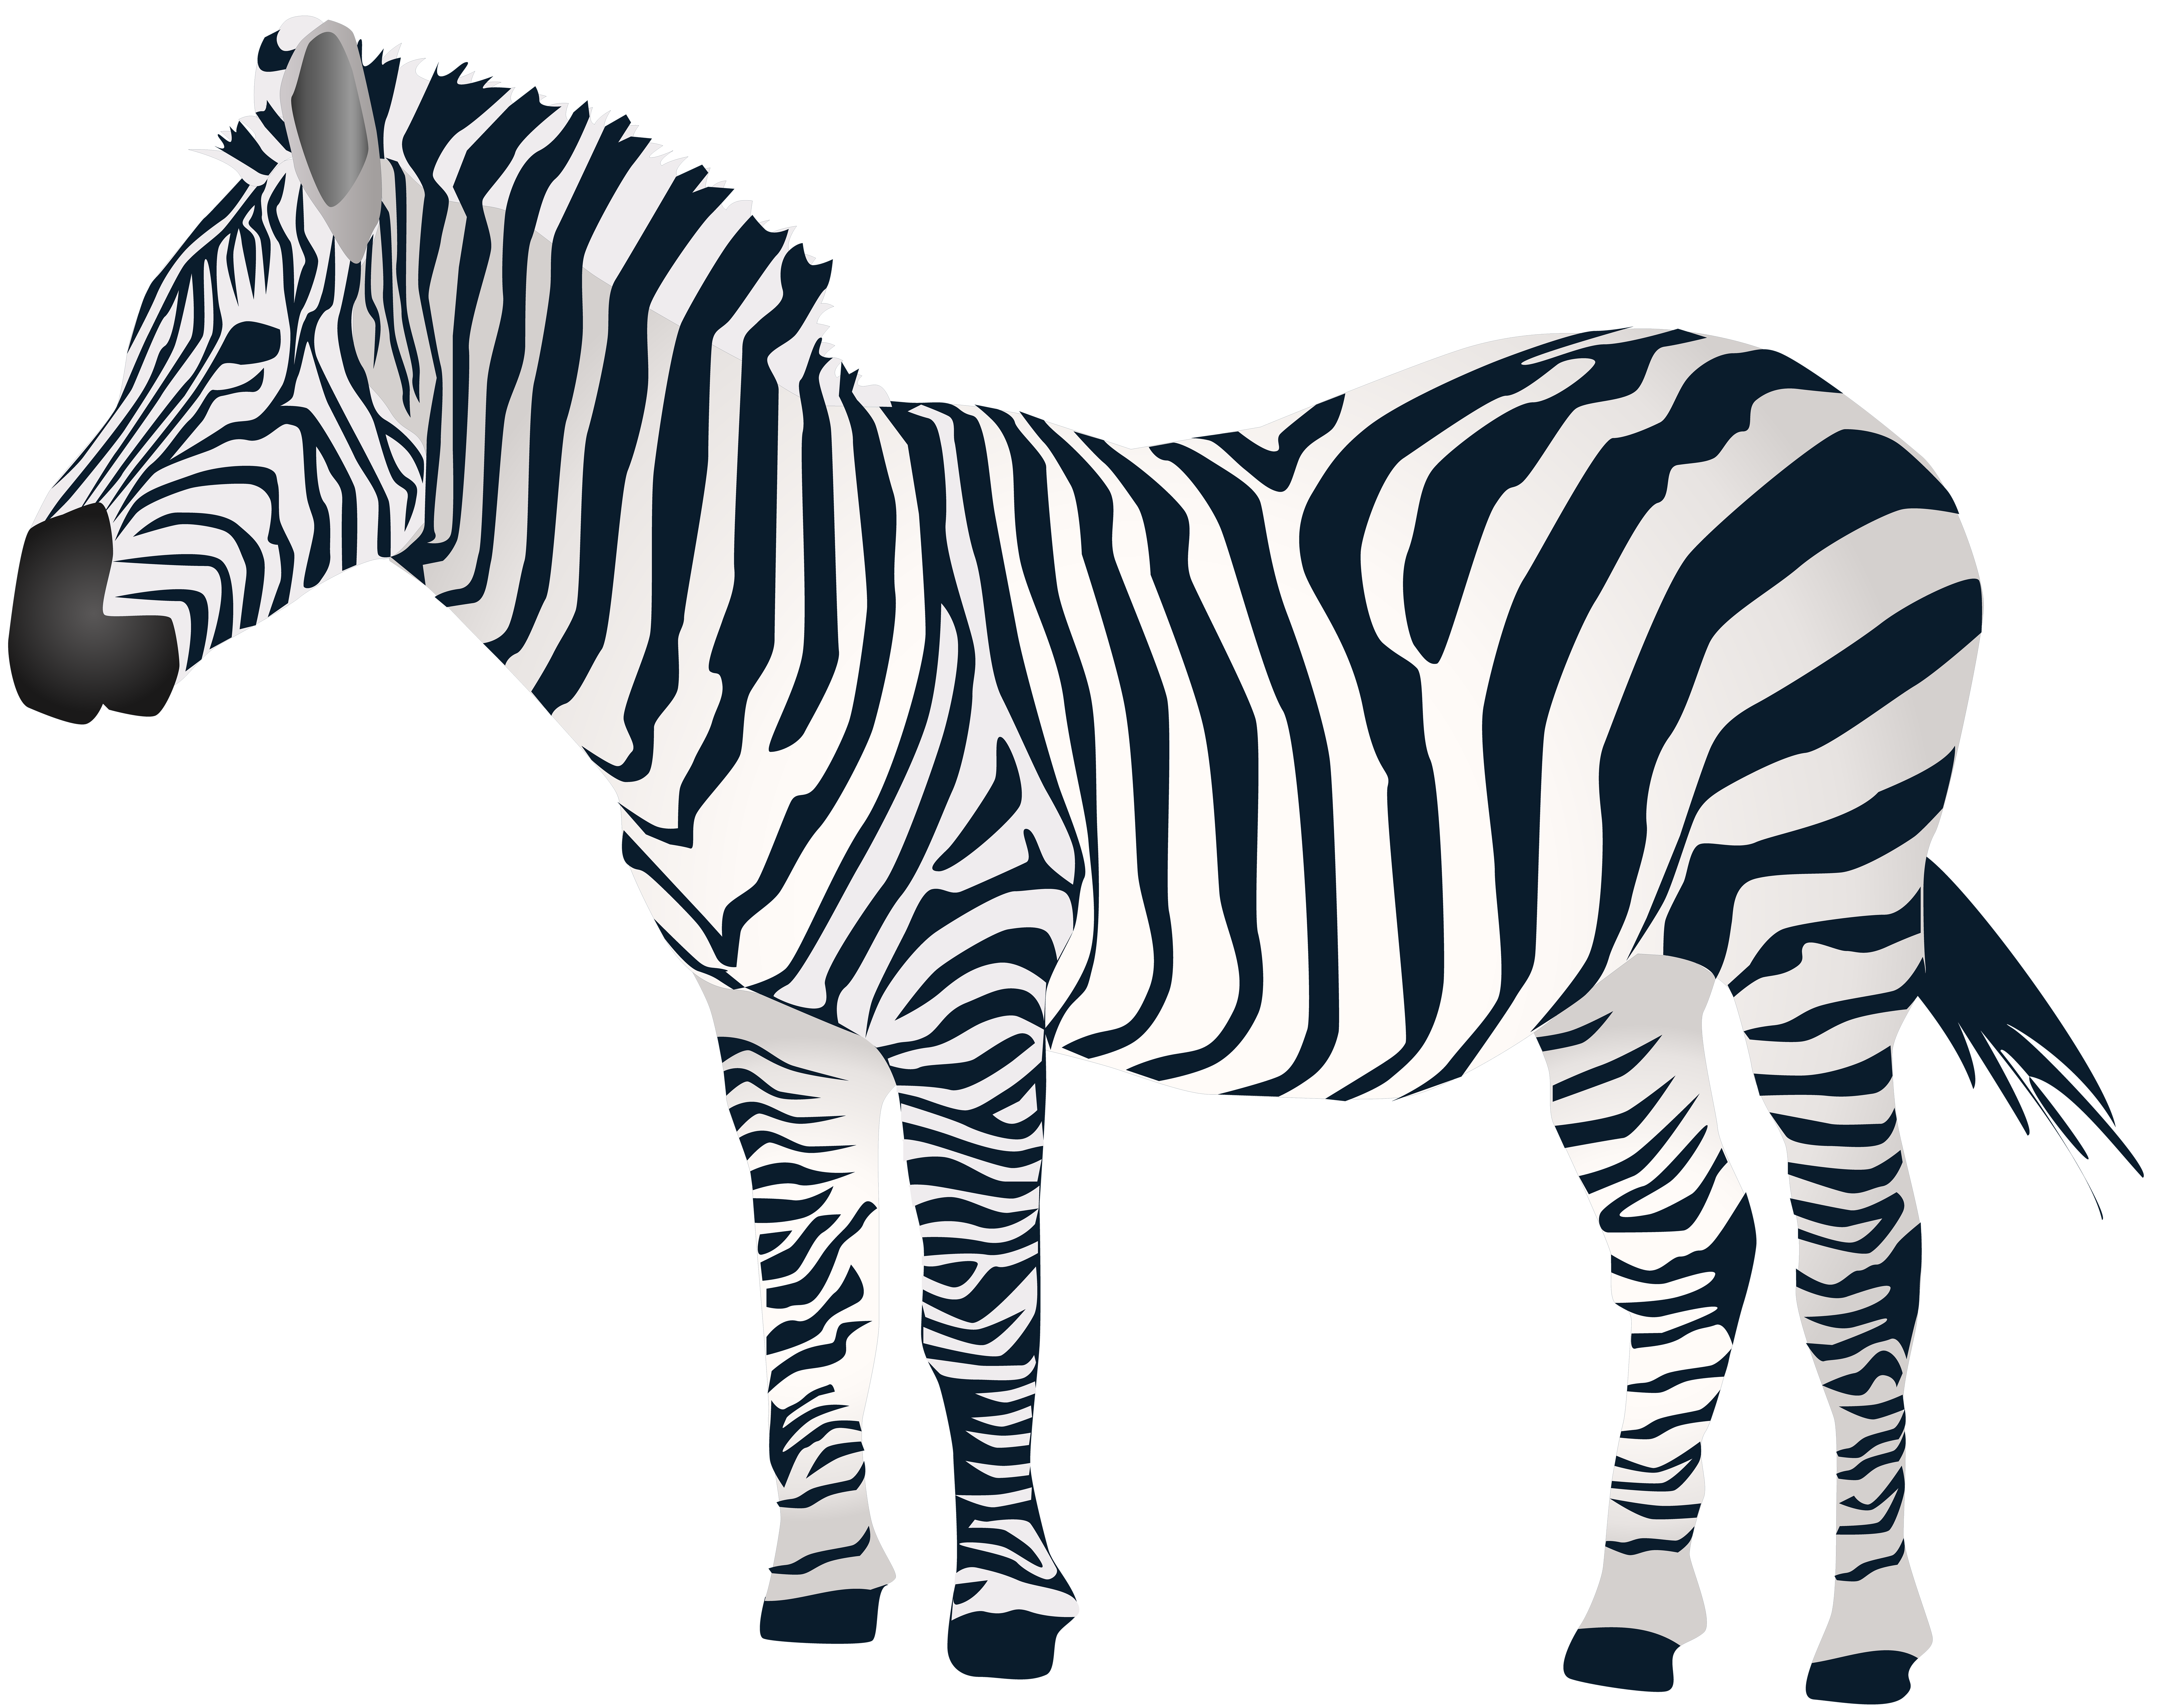 jpg black and white download Png clip art gallery. Zebra black and white clipart